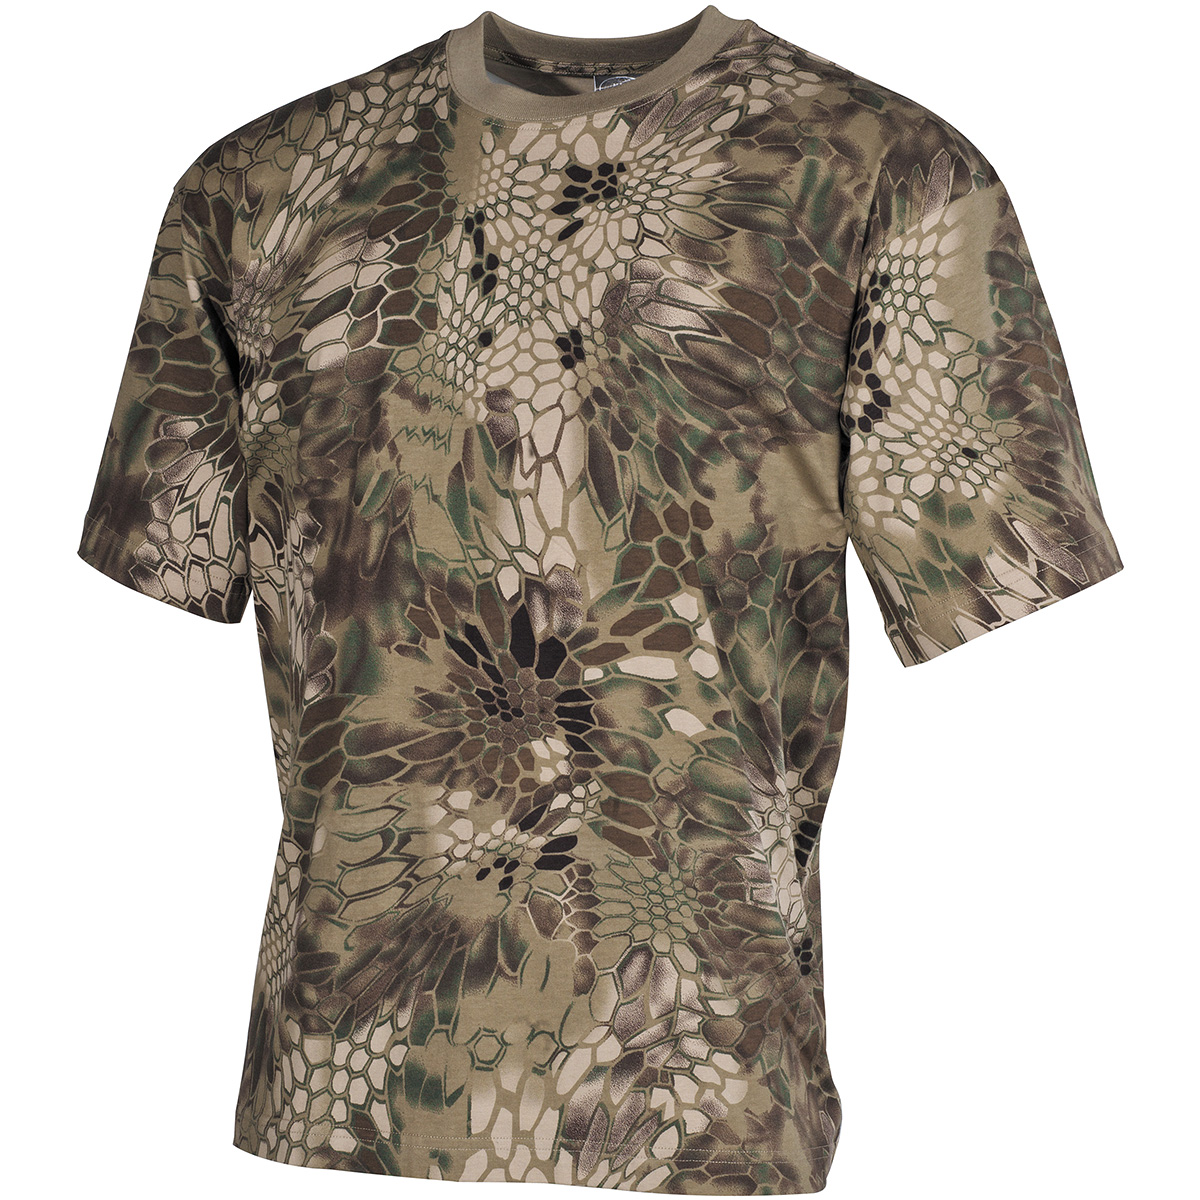 Mfh hunting camouflage cotton top mens fishing hiking army for Camo fishing shirt